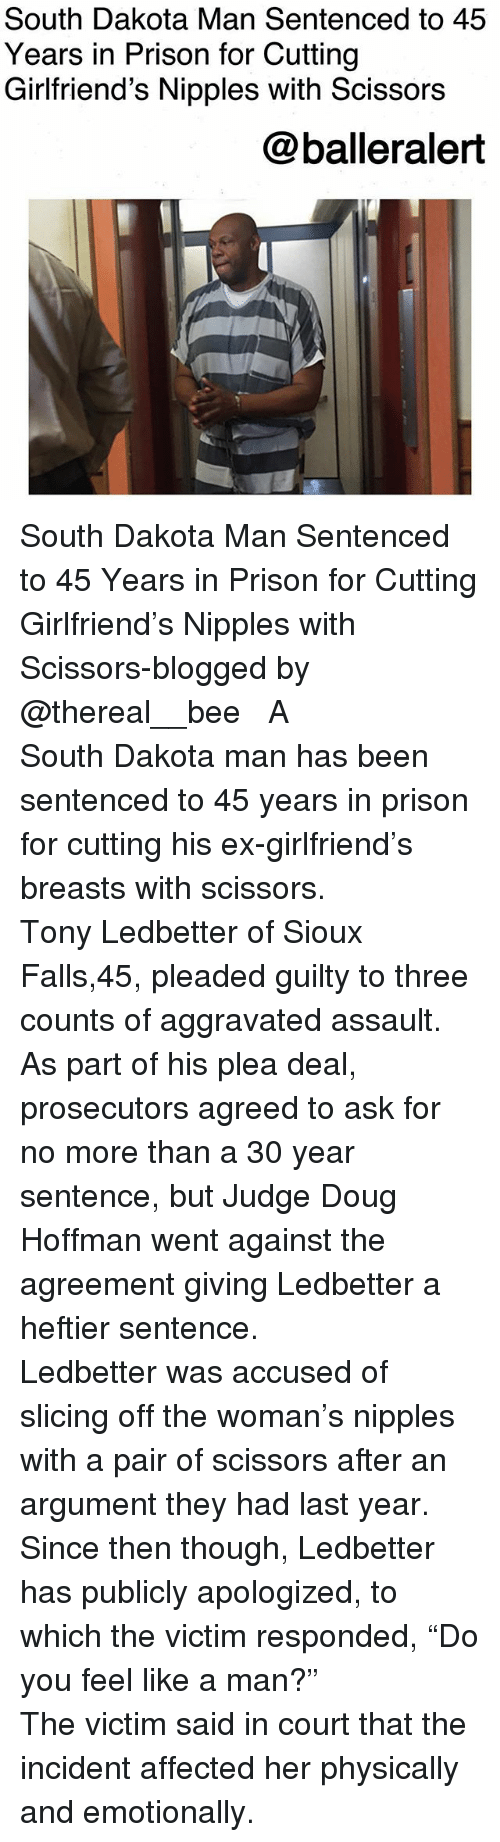 "Doug, Memes, and Prison: South Dakota Man Sentenced to 45  Years in Prison for Cutting  Girlfriend's Nipples with Scissors  @balleralert South Dakota Man Sentenced to 45 Years in Prison for Cutting Girlfriend's Nipples with Scissors-blogged by @thereal__bee ⠀⠀⠀⠀⠀⠀⠀⠀⠀ ⠀⠀ A South Dakota man has been sentenced to 45 years in prison for cutting his ex-girlfriend's breasts with scissors. ⠀⠀⠀⠀⠀⠀⠀⠀⠀ ⠀⠀ Tony Ledbetter of Sioux Falls,45, pleaded guilty to three counts of aggravated assault. As part of his plea deal, prosecutors agreed to ask for no more than a 30 year sentence, but Judge Doug Hoffman went against the agreement giving Ledbetter a heftier sentence. ⠀⠀⠀⠀⠀⠀⠀⠀⠀ ⠀⠀ Ledbetter was accused of slicing off the woman's nipples with a pair of scissors after an argument they had last year. Since then though, Ledbetter has publicly apologized, to which the victim responded, ""Do you feel like a man?"" ⠀⠀⠀⠀⠀⠀⠀⠀⠀ ⠀⠀ The victim said in court that the incident affected her physically and emotionally."